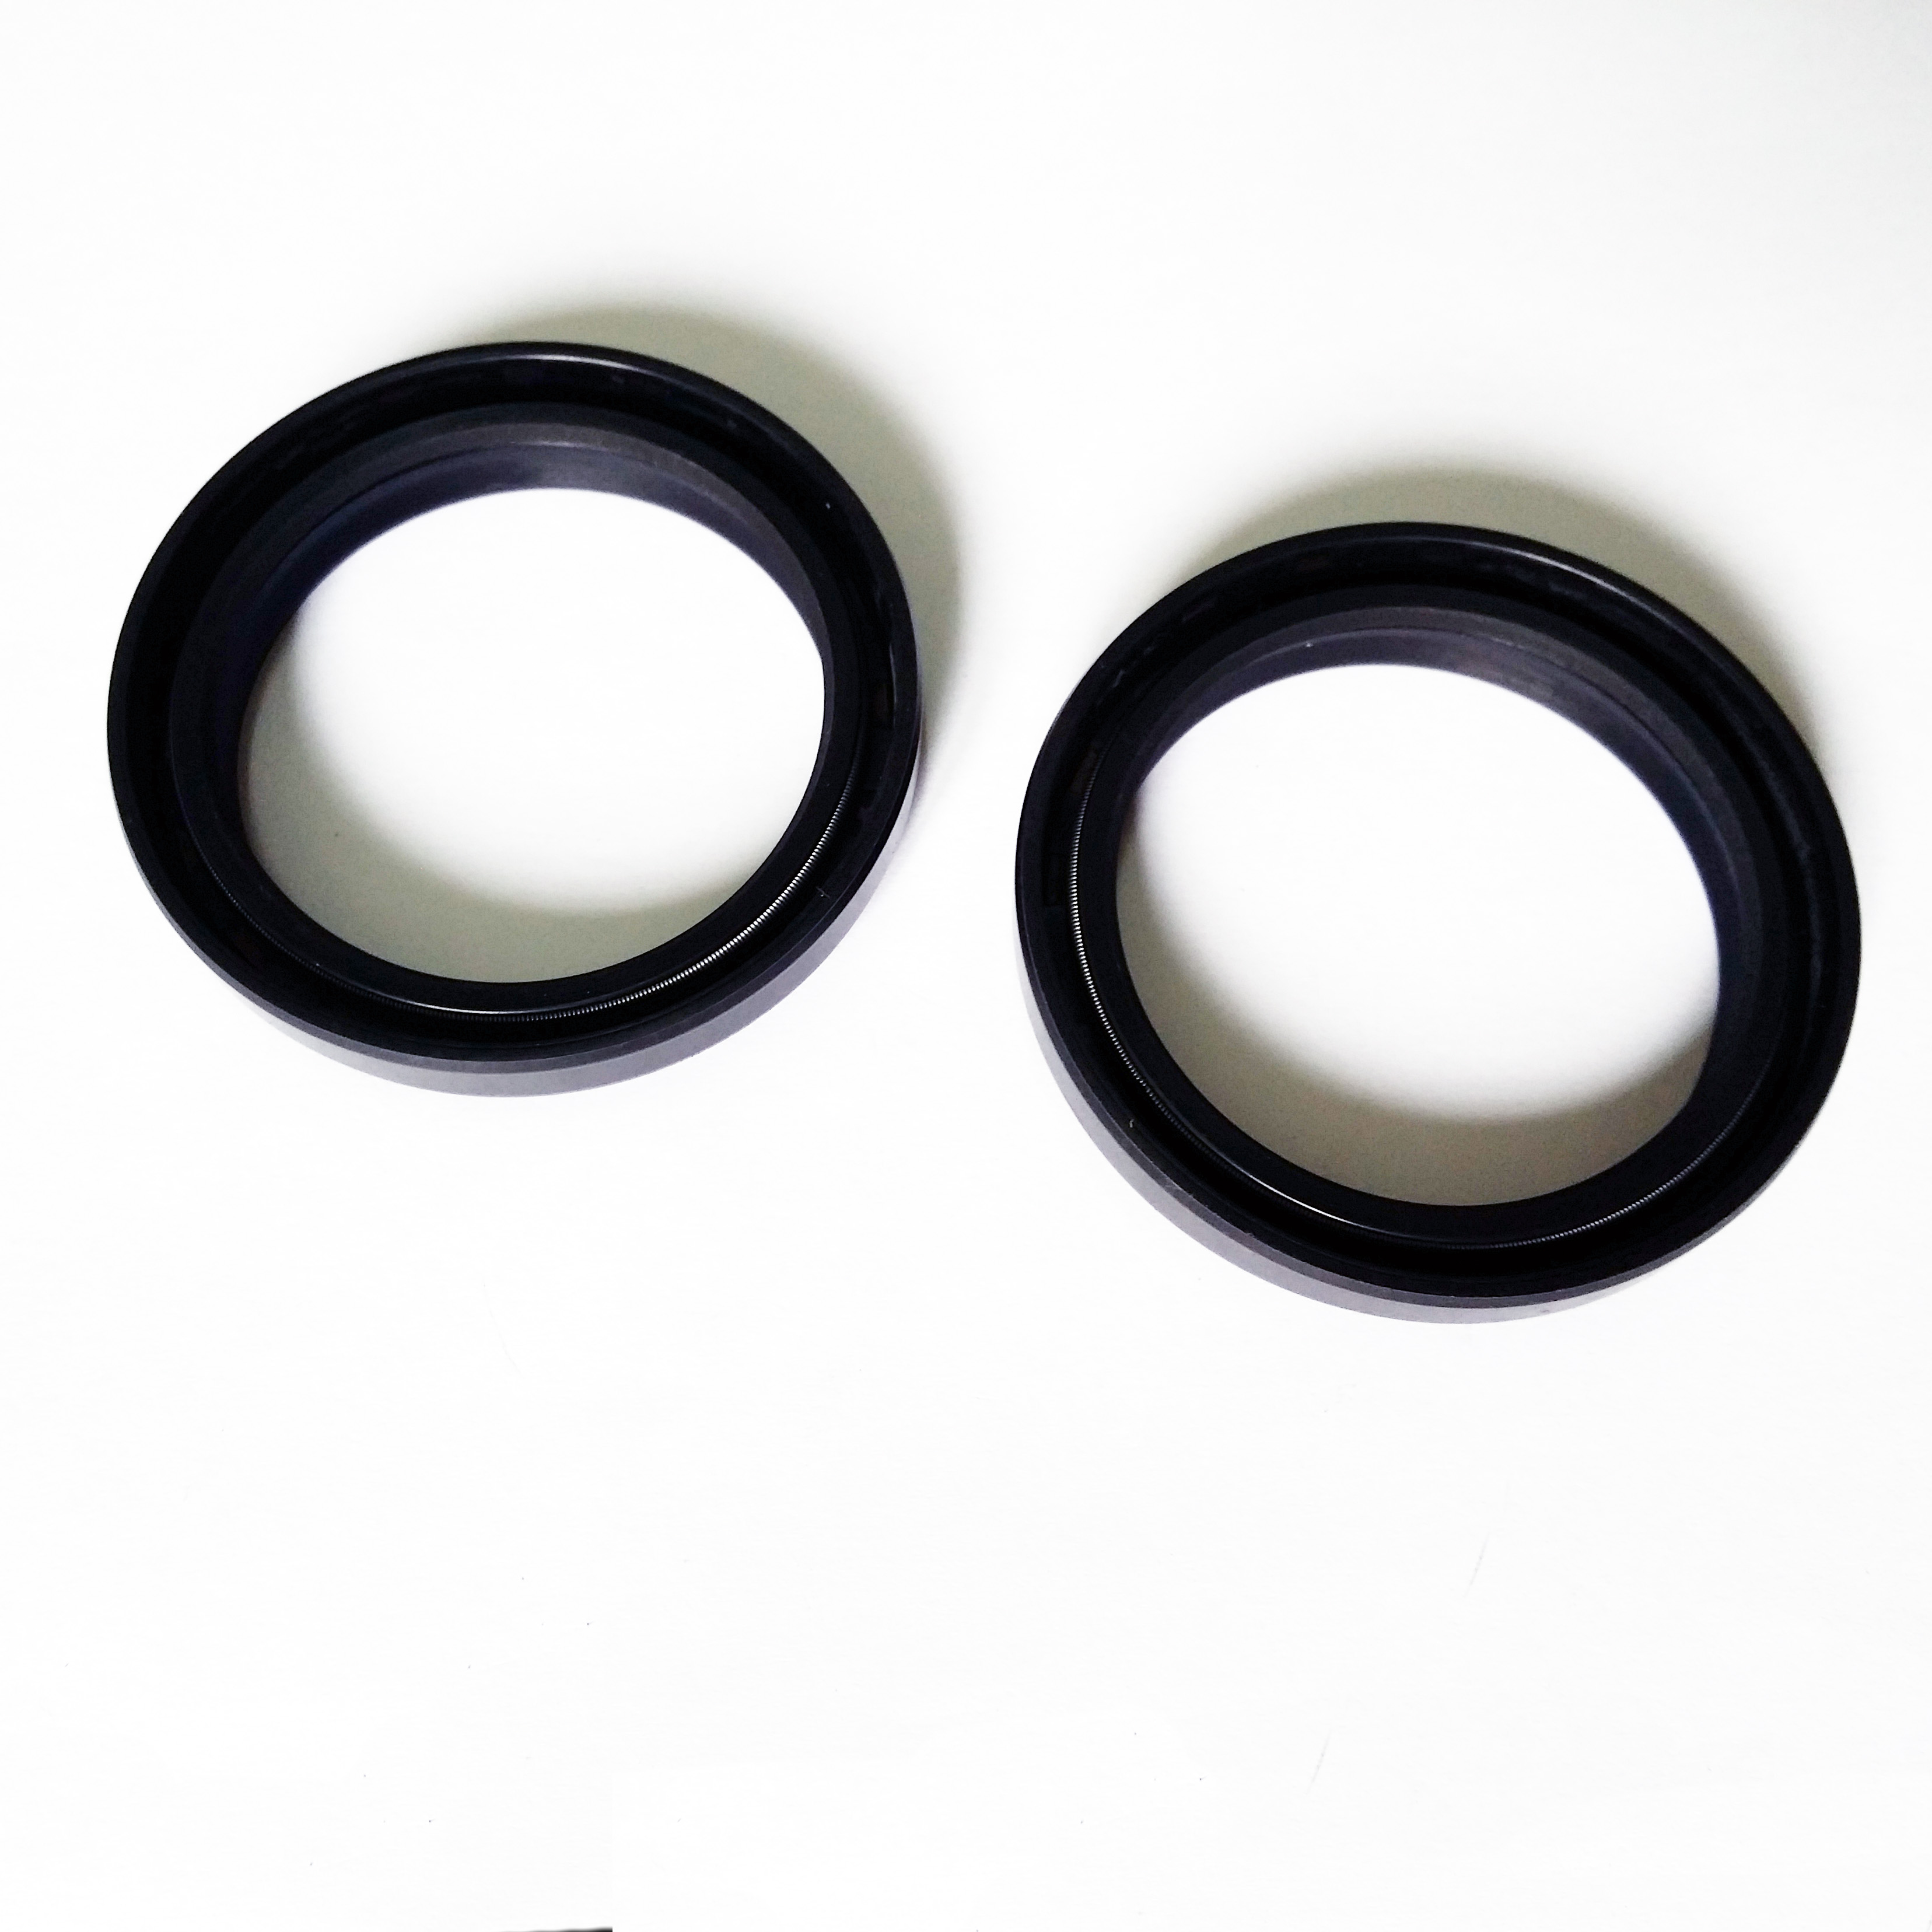 K-Tech Honda CRF250 2015-2016 NOK Front Fork Oil Seals 49x60x10mm